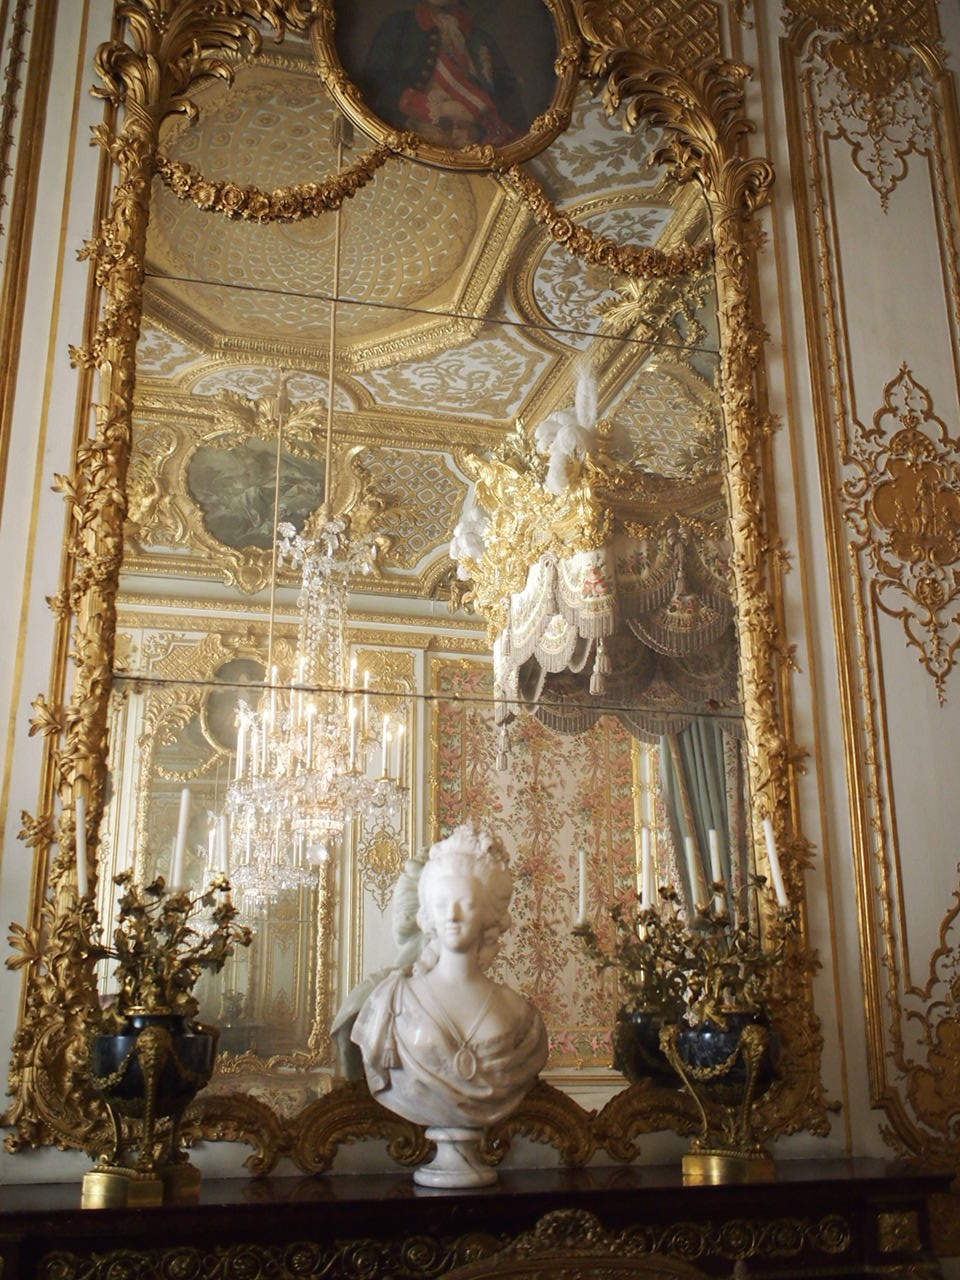 inside the palace of Versailles